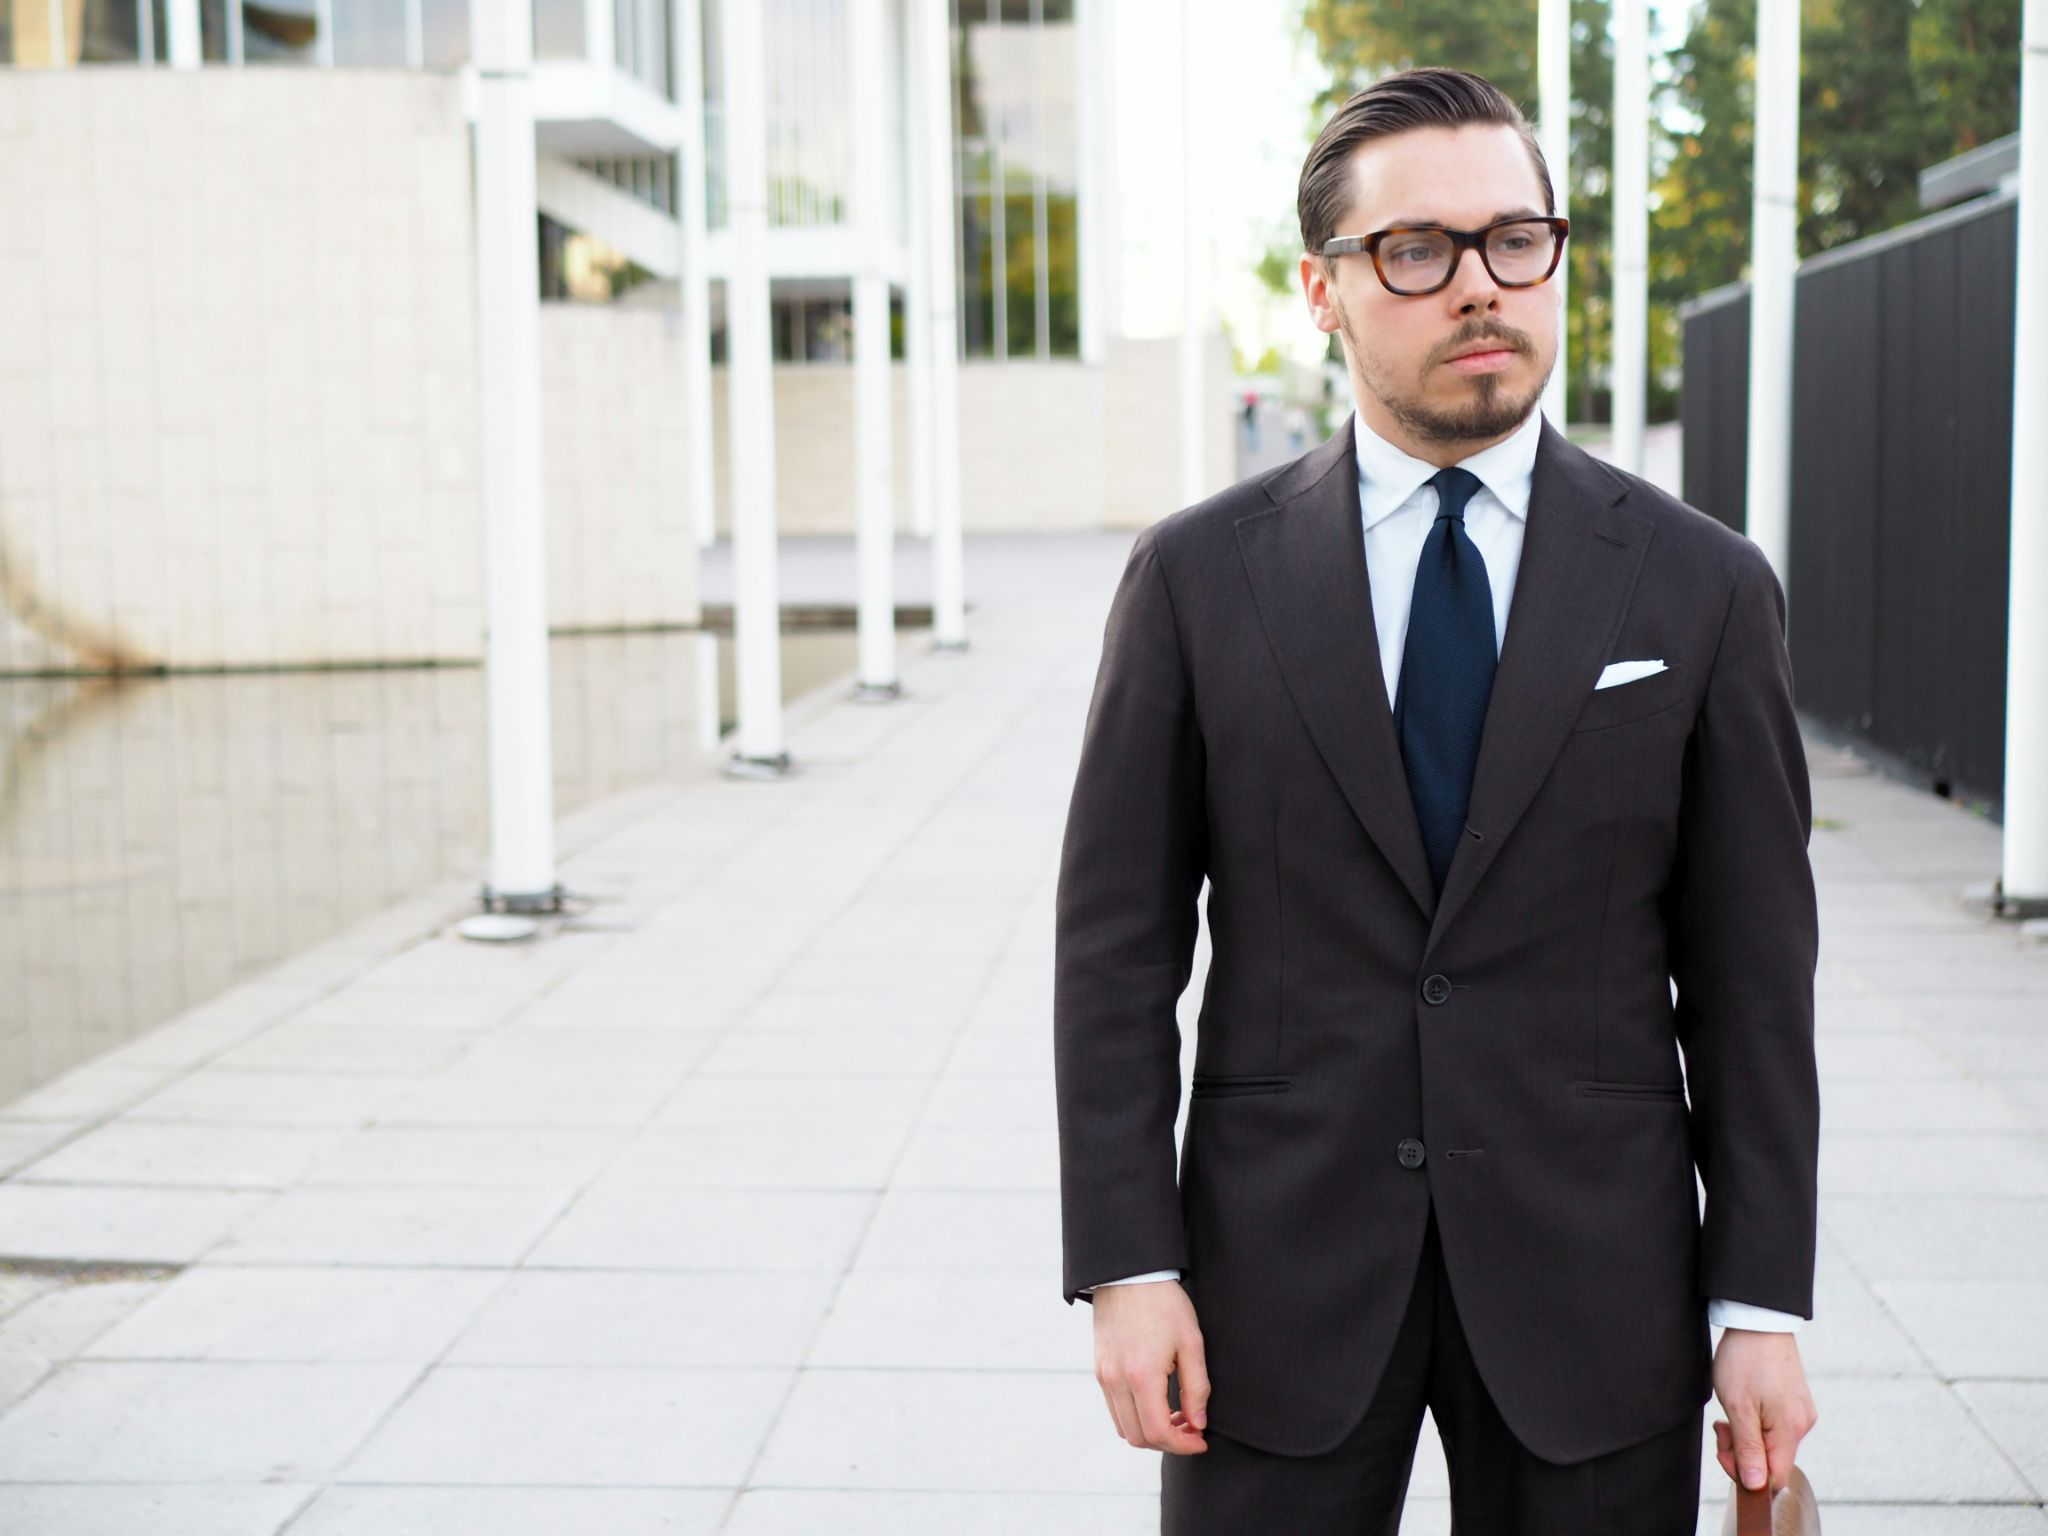 Brown business suit with formal accessories.